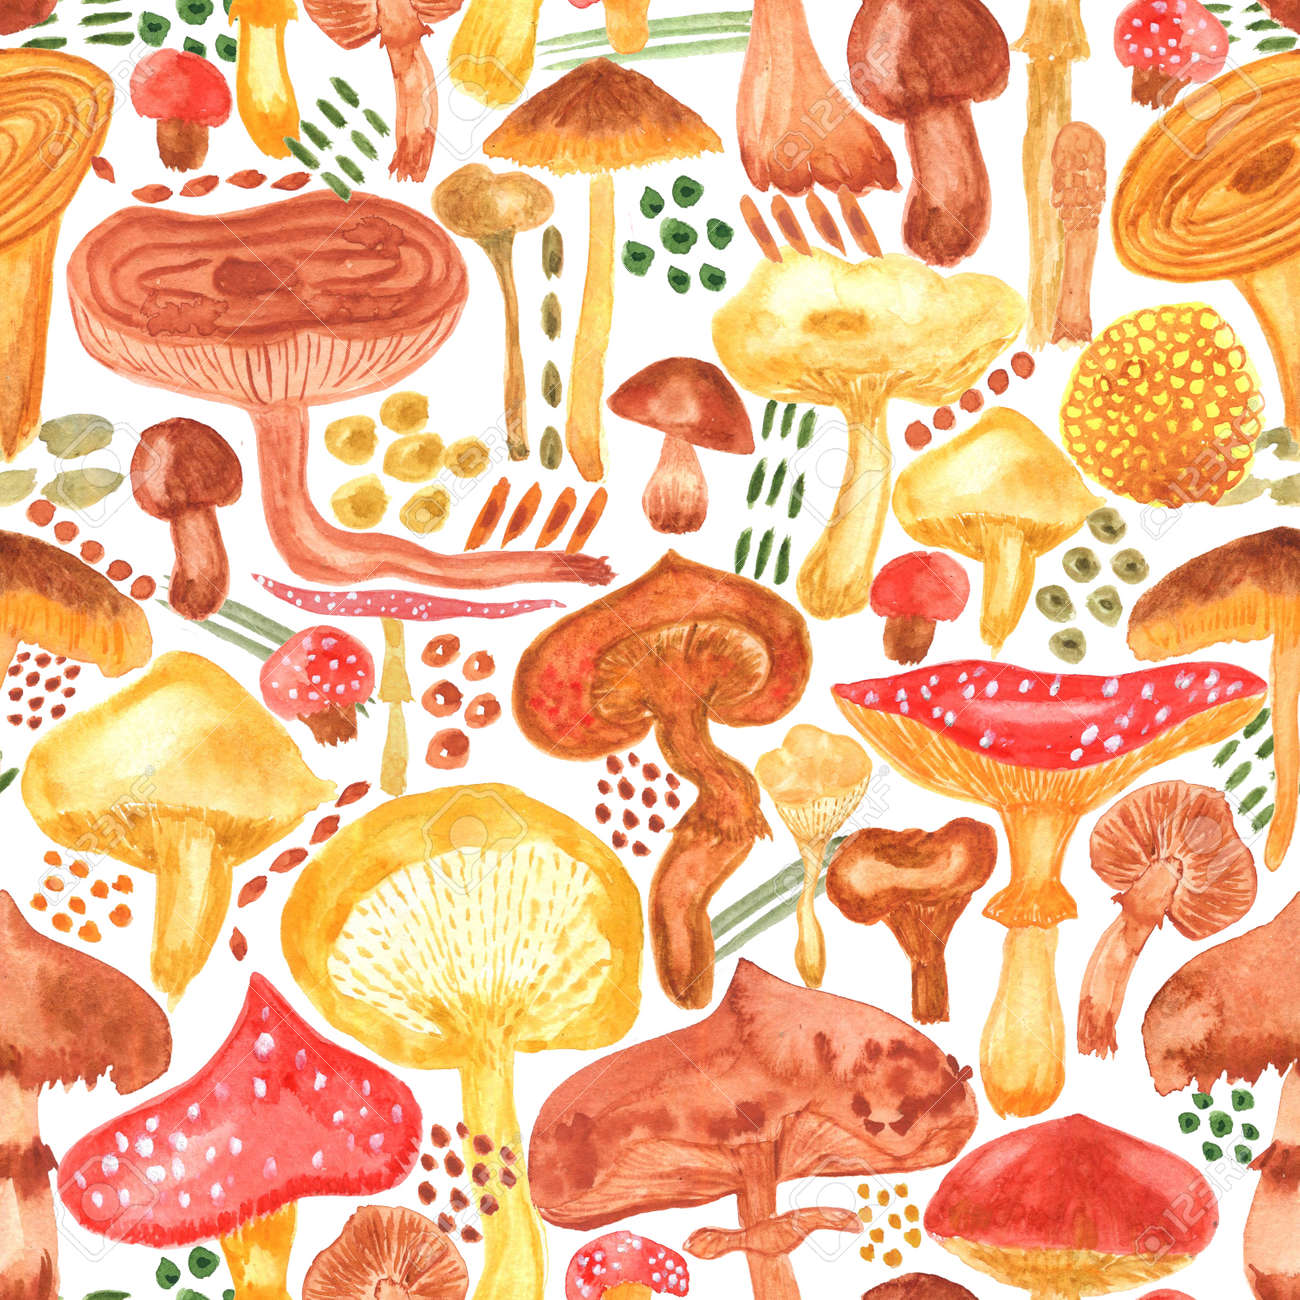 Colorful watercolor mushrooms seamless pattern. Hand Illustration for creating fabrics, wallpapers, gift wrapping paper, invitations, textile, scrapbooking. Isolated on white background. - 164949482